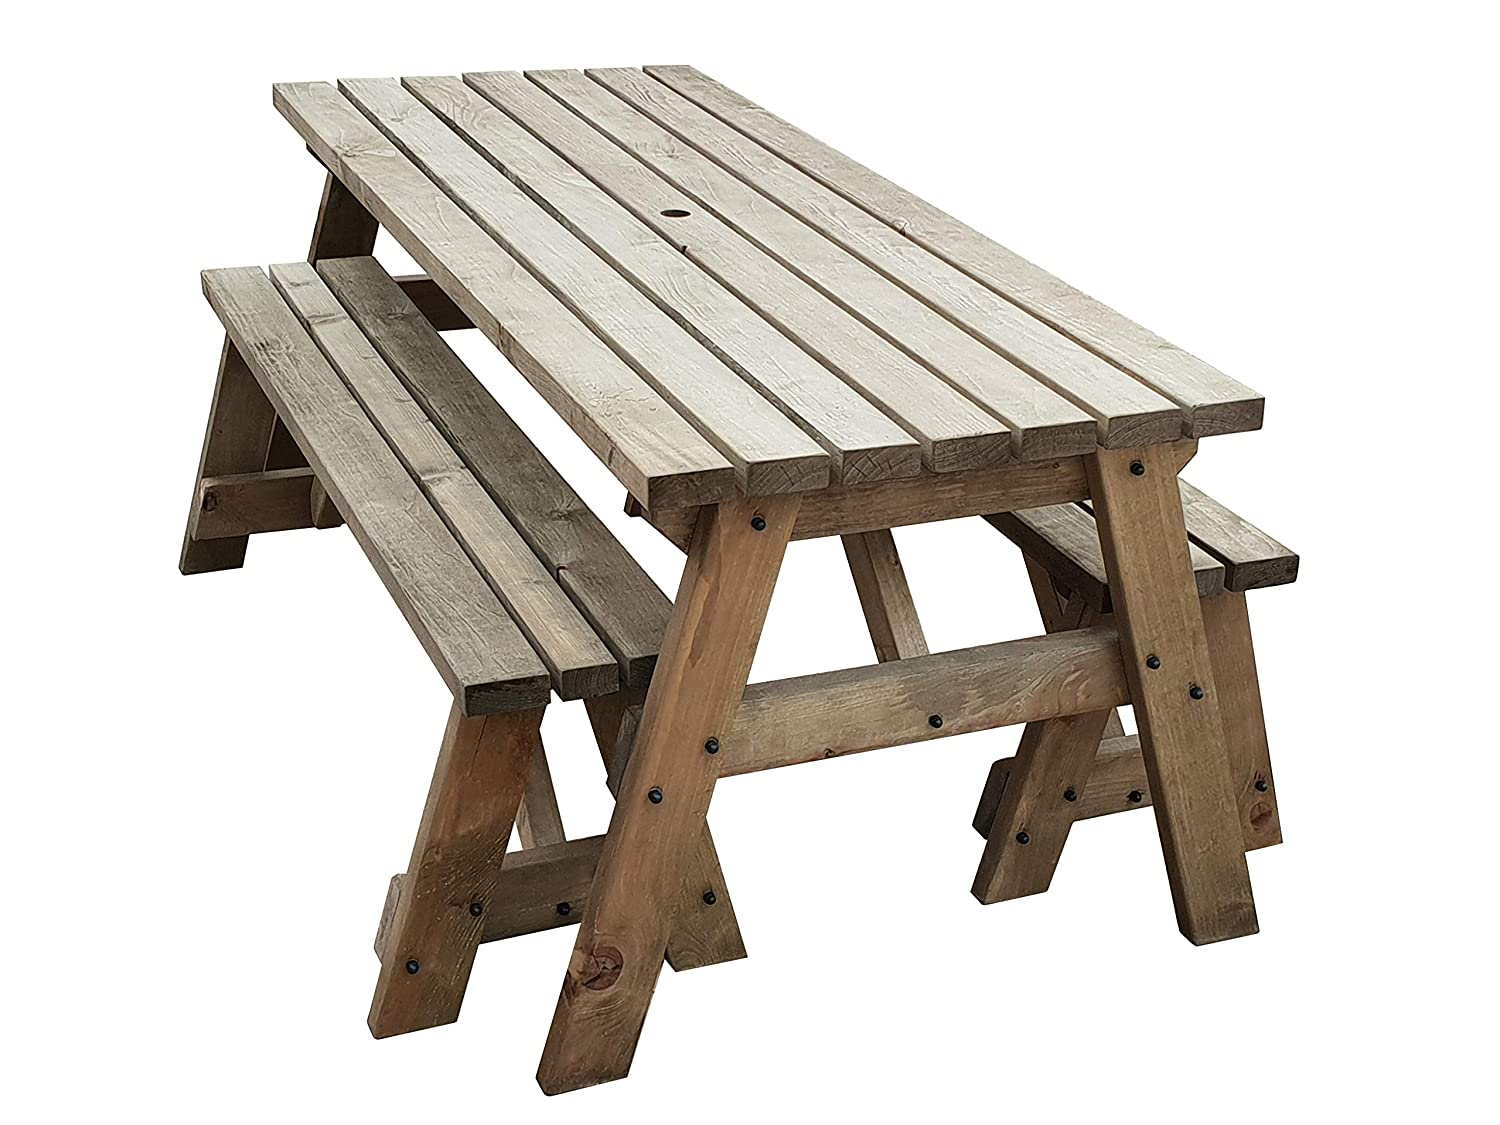 Victoria compact garden picnic table and benches space saving furniture for small spaces heavy duty handmade in uk pressure treated rustic brown